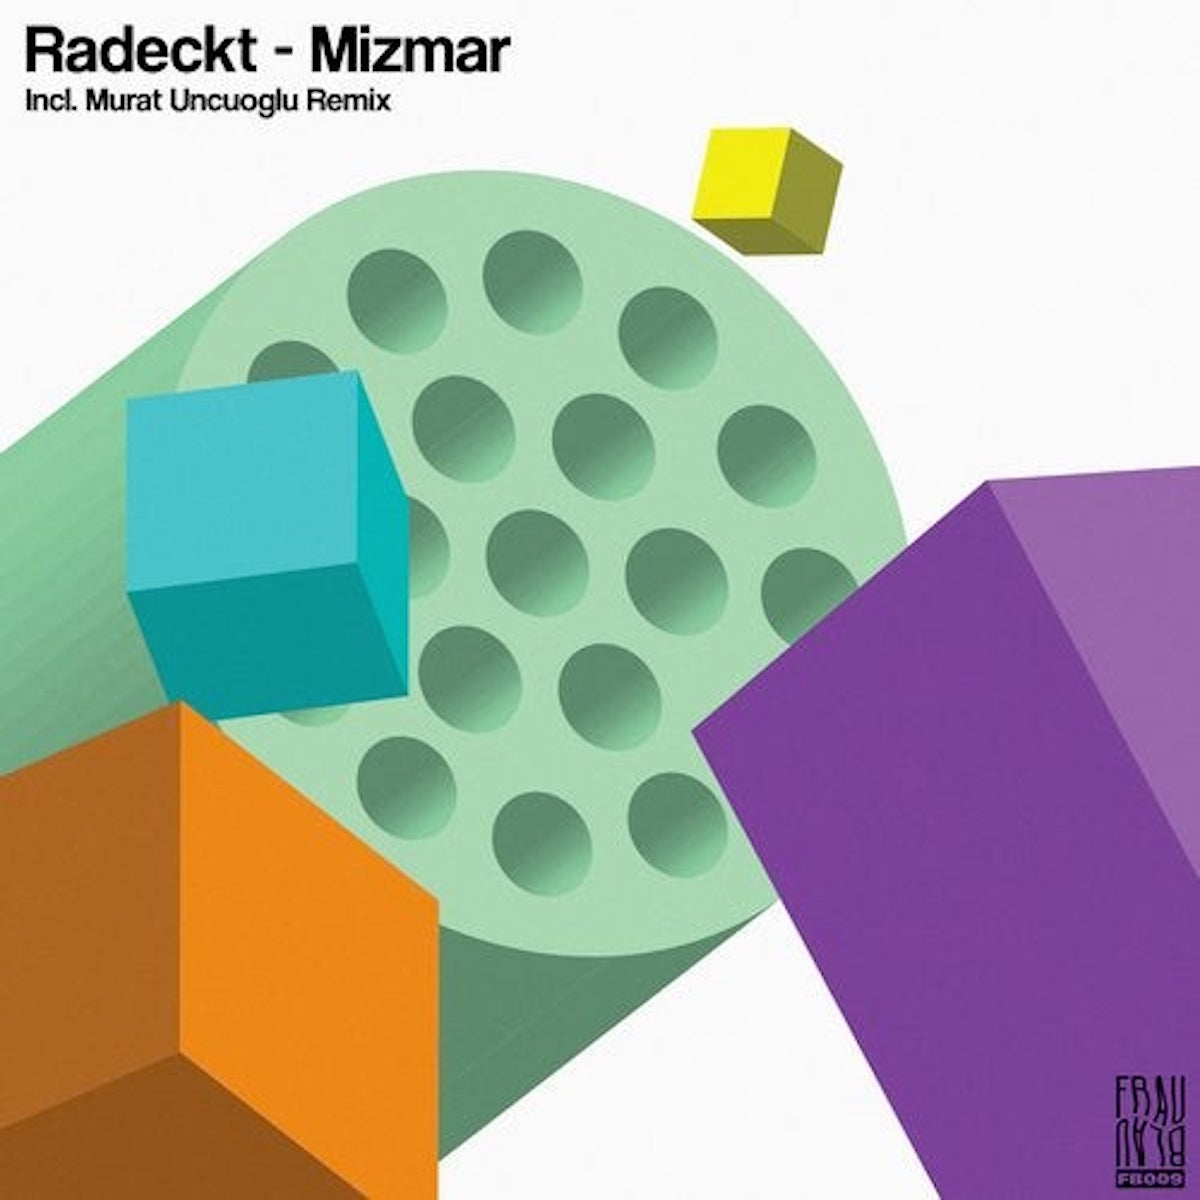 Radeckt Mizmar EP is out on Frau Blau